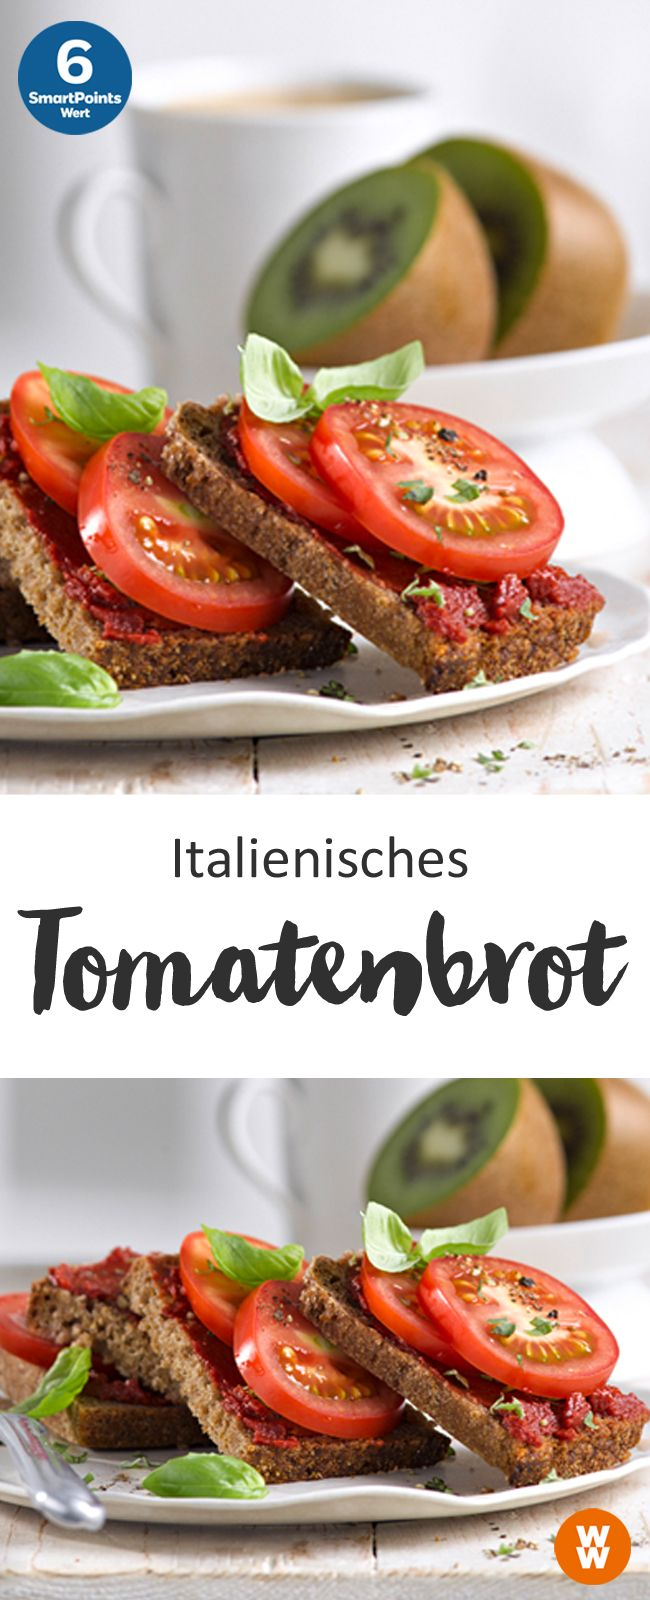 italienisches tomatenbrot 6 smartpoints portion weight watchers schnelles fr hst ck. Black Bedroom Furniture Sets. Home Design Ideas